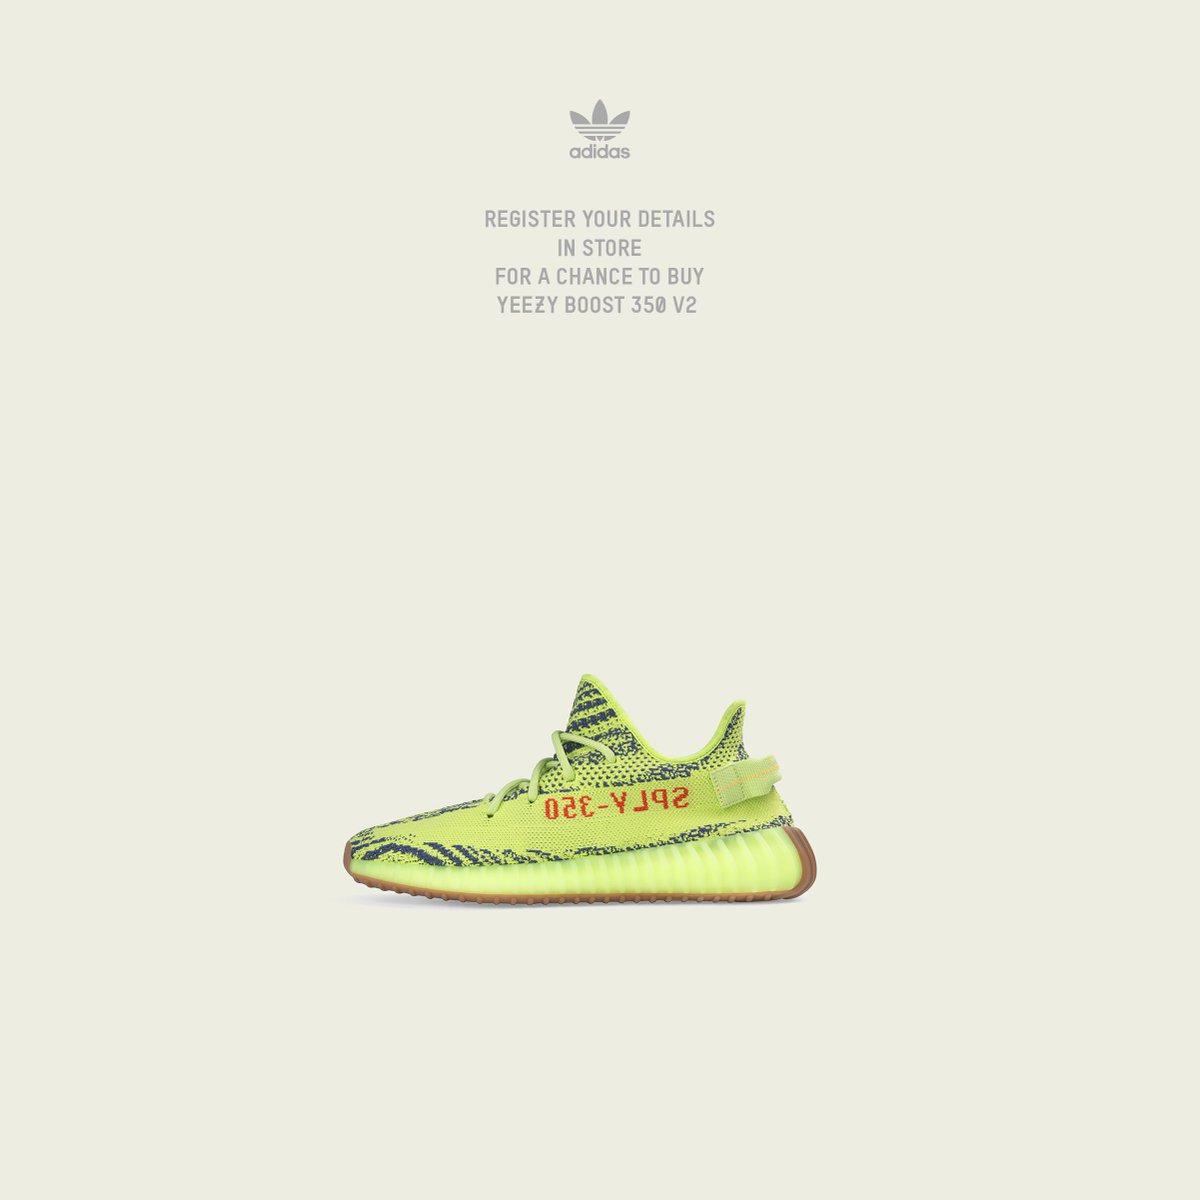 b2ac86b01 The raffle for the Adidas Yeezy Boost V2 350 - Semi Frozen Yellow is going  on IN STORE ONLY all day today   tomorrow at all BAIT locations.